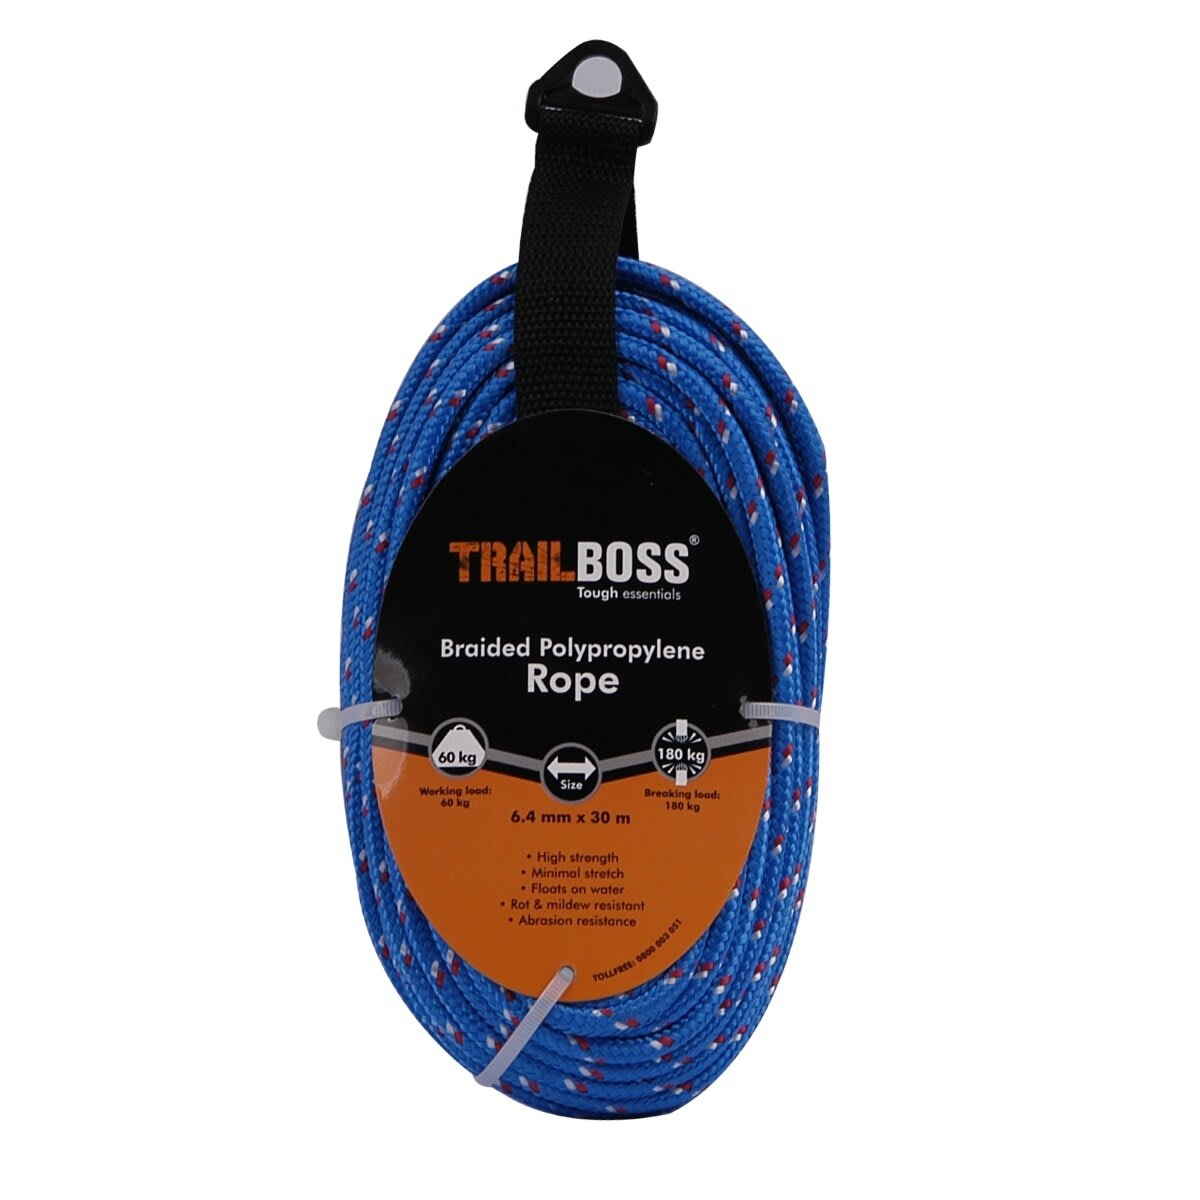 TrailBoss 6.4mm x 30m Braided Polypropylene Rope